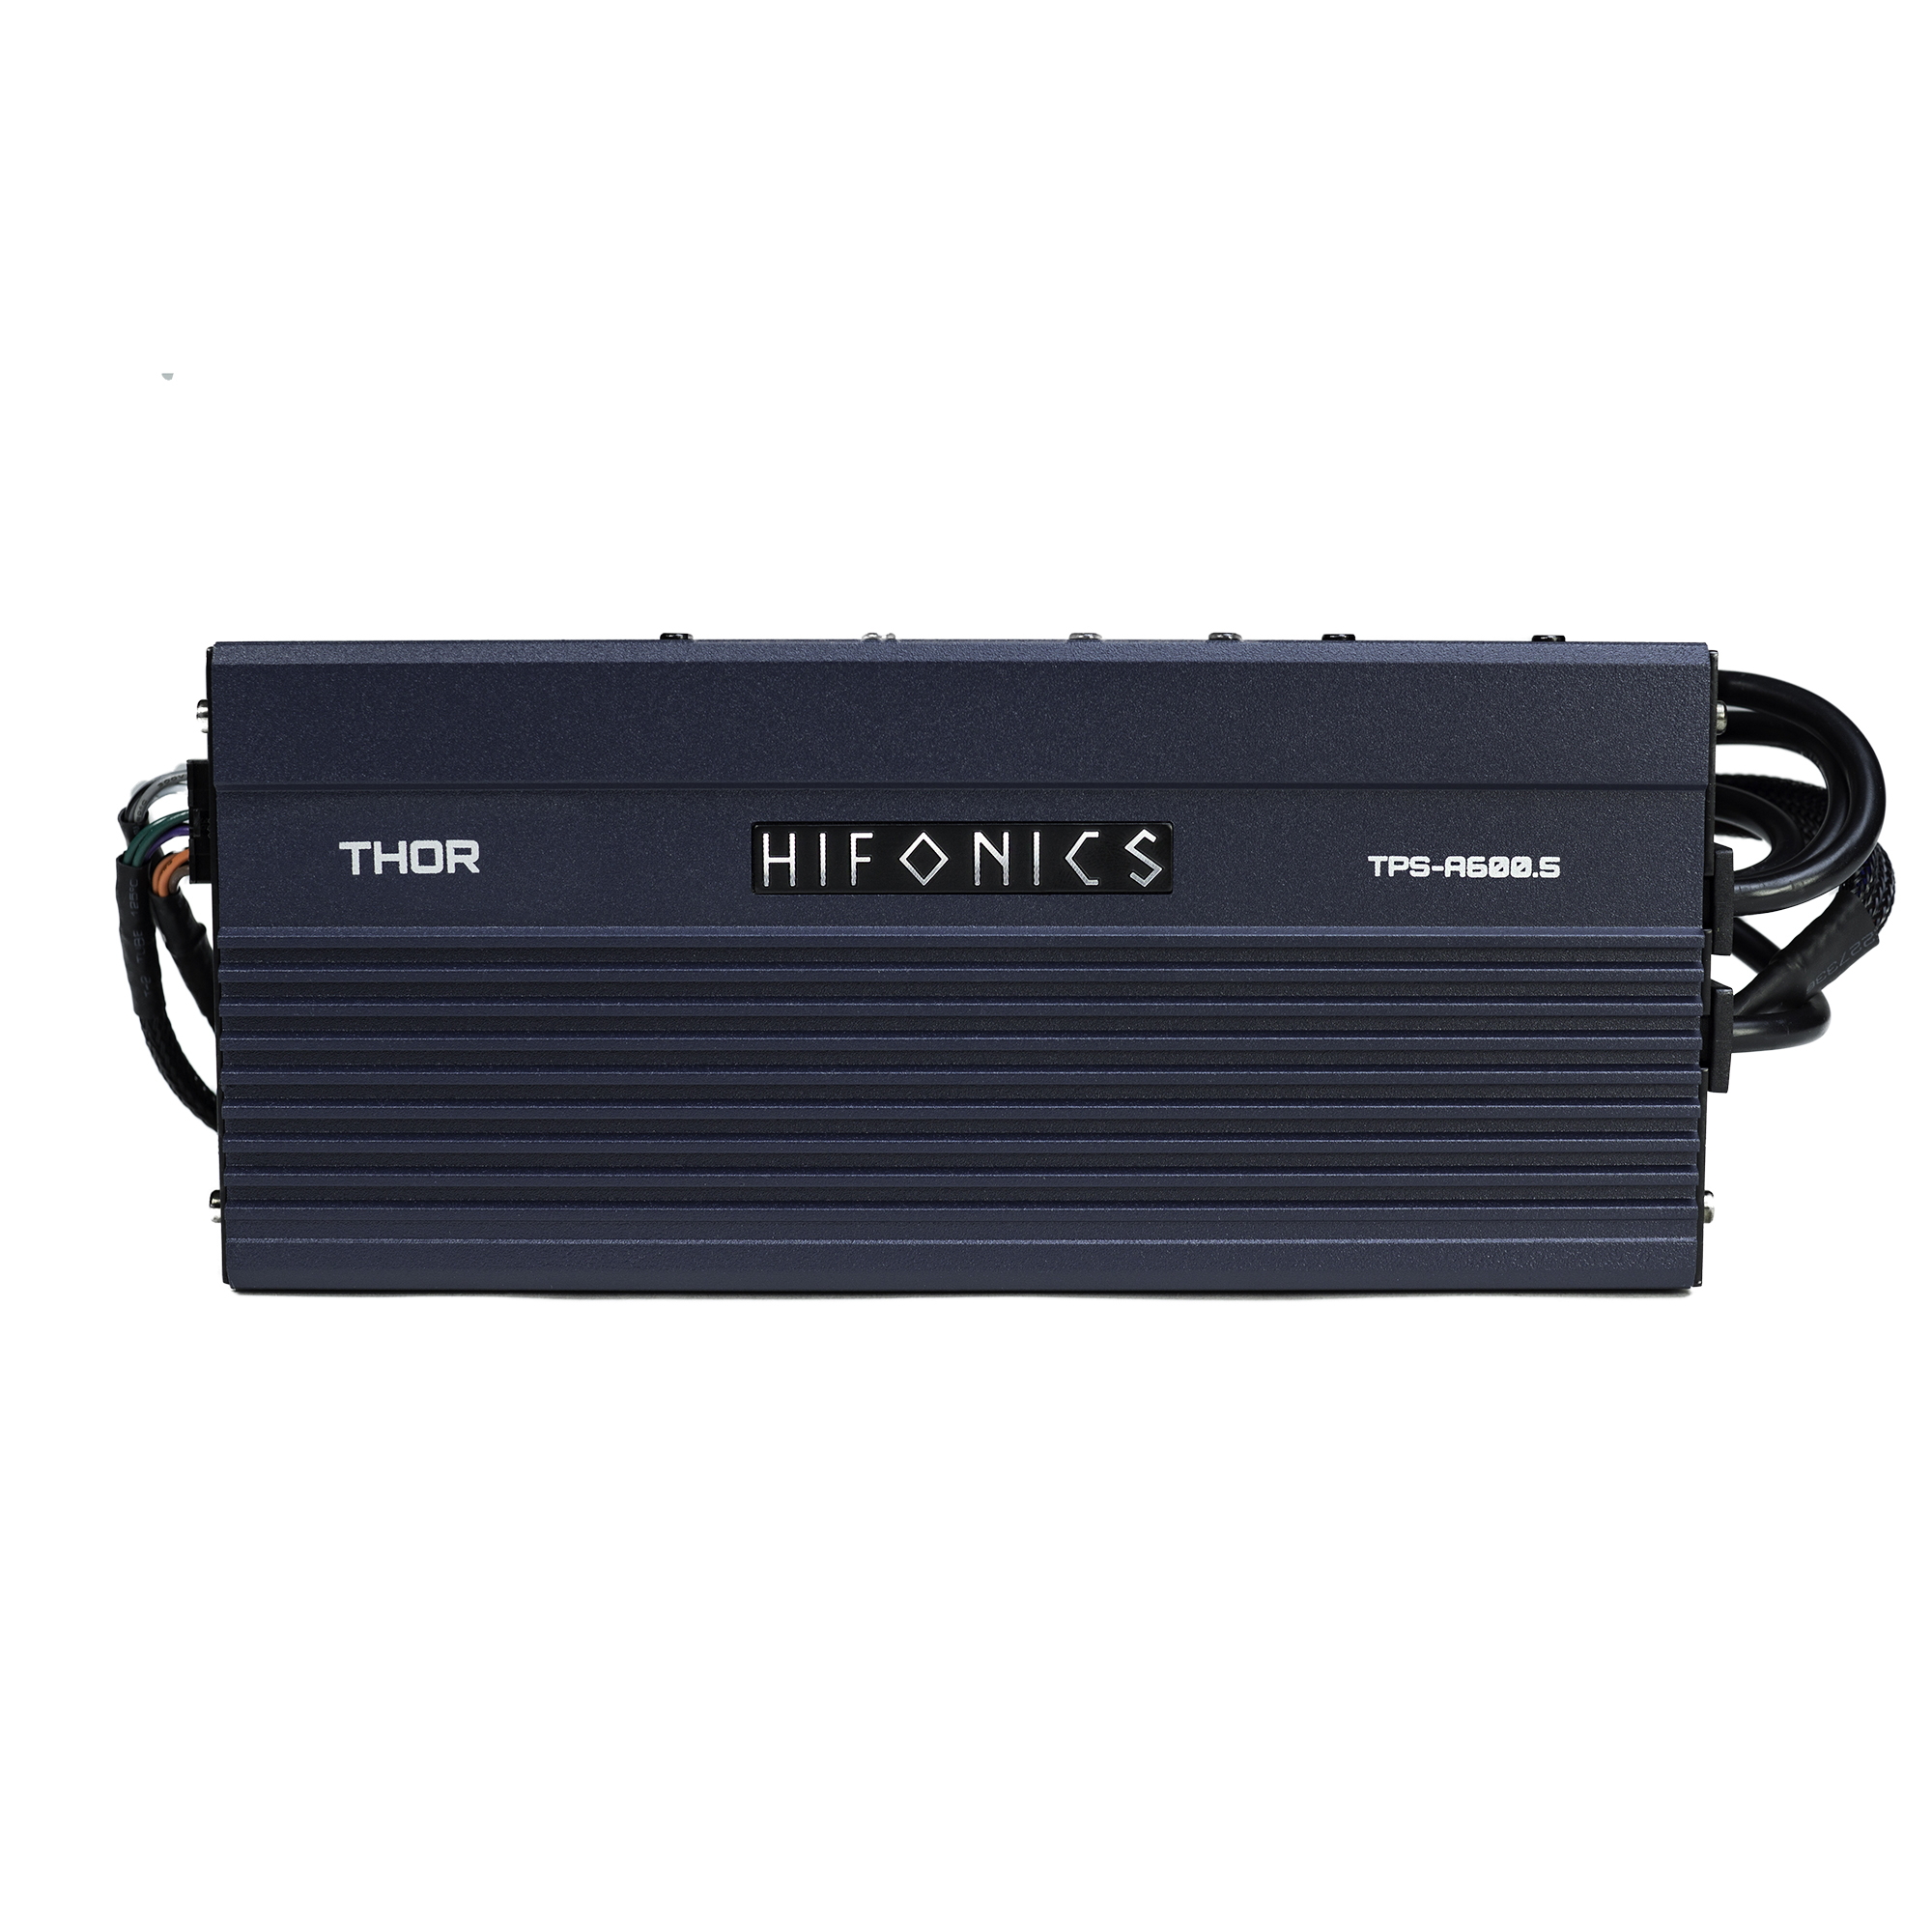 Hifonics amp wiring diagram wiring central asia map with capitals hifonics thor compact 600 watt 5 channel marine audio amplifier resource 232422524405 hifonics amp wiring diagram wiring hifonics amp wiring diagram wiring asfbconference2016 Image collections